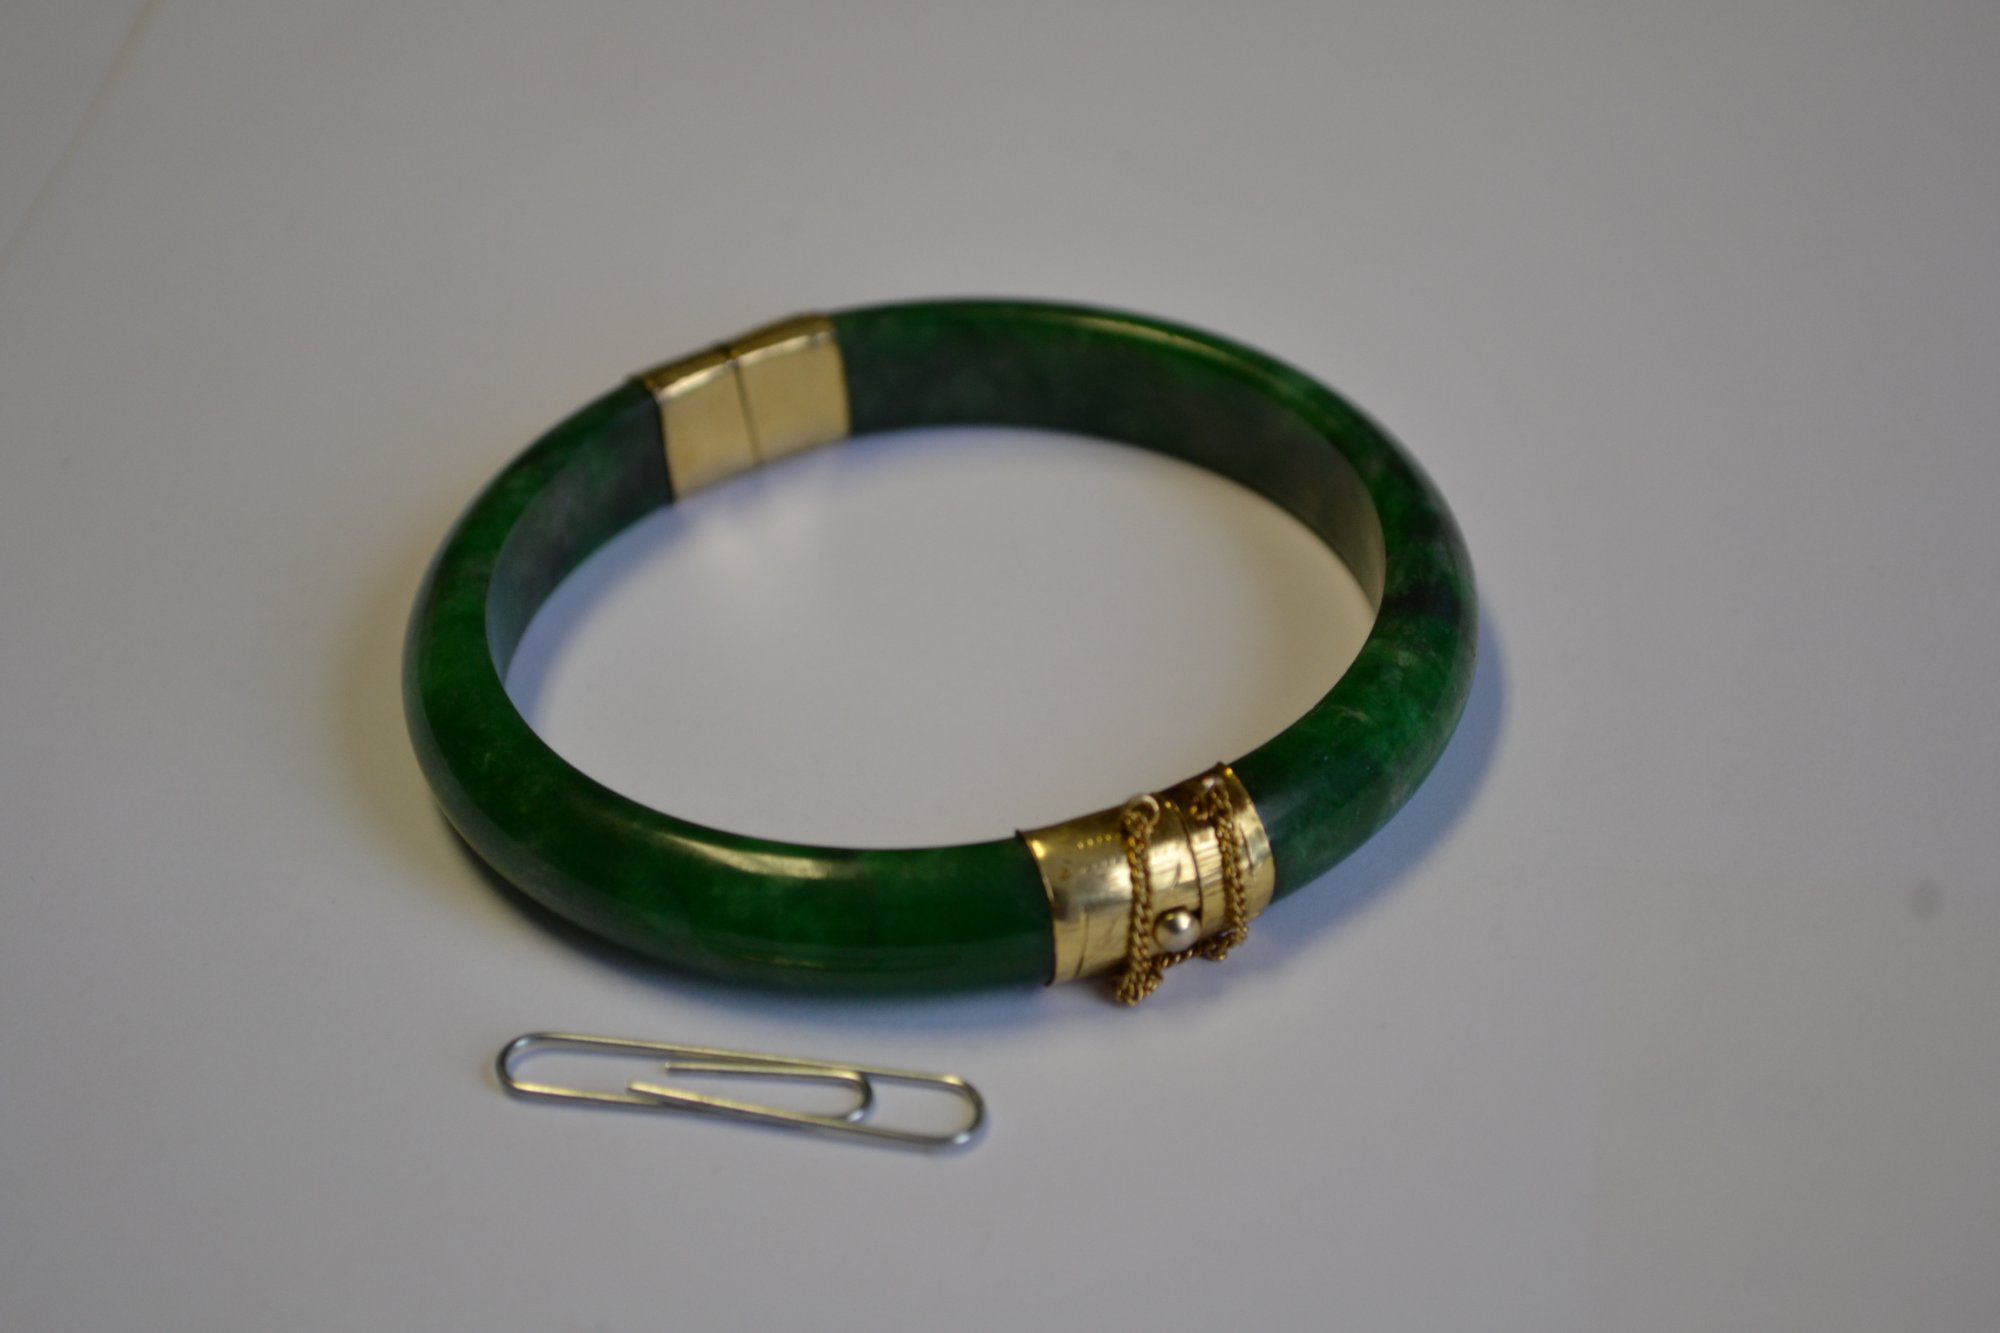 20th Century Chinese Jade Bracelet with gold clasps